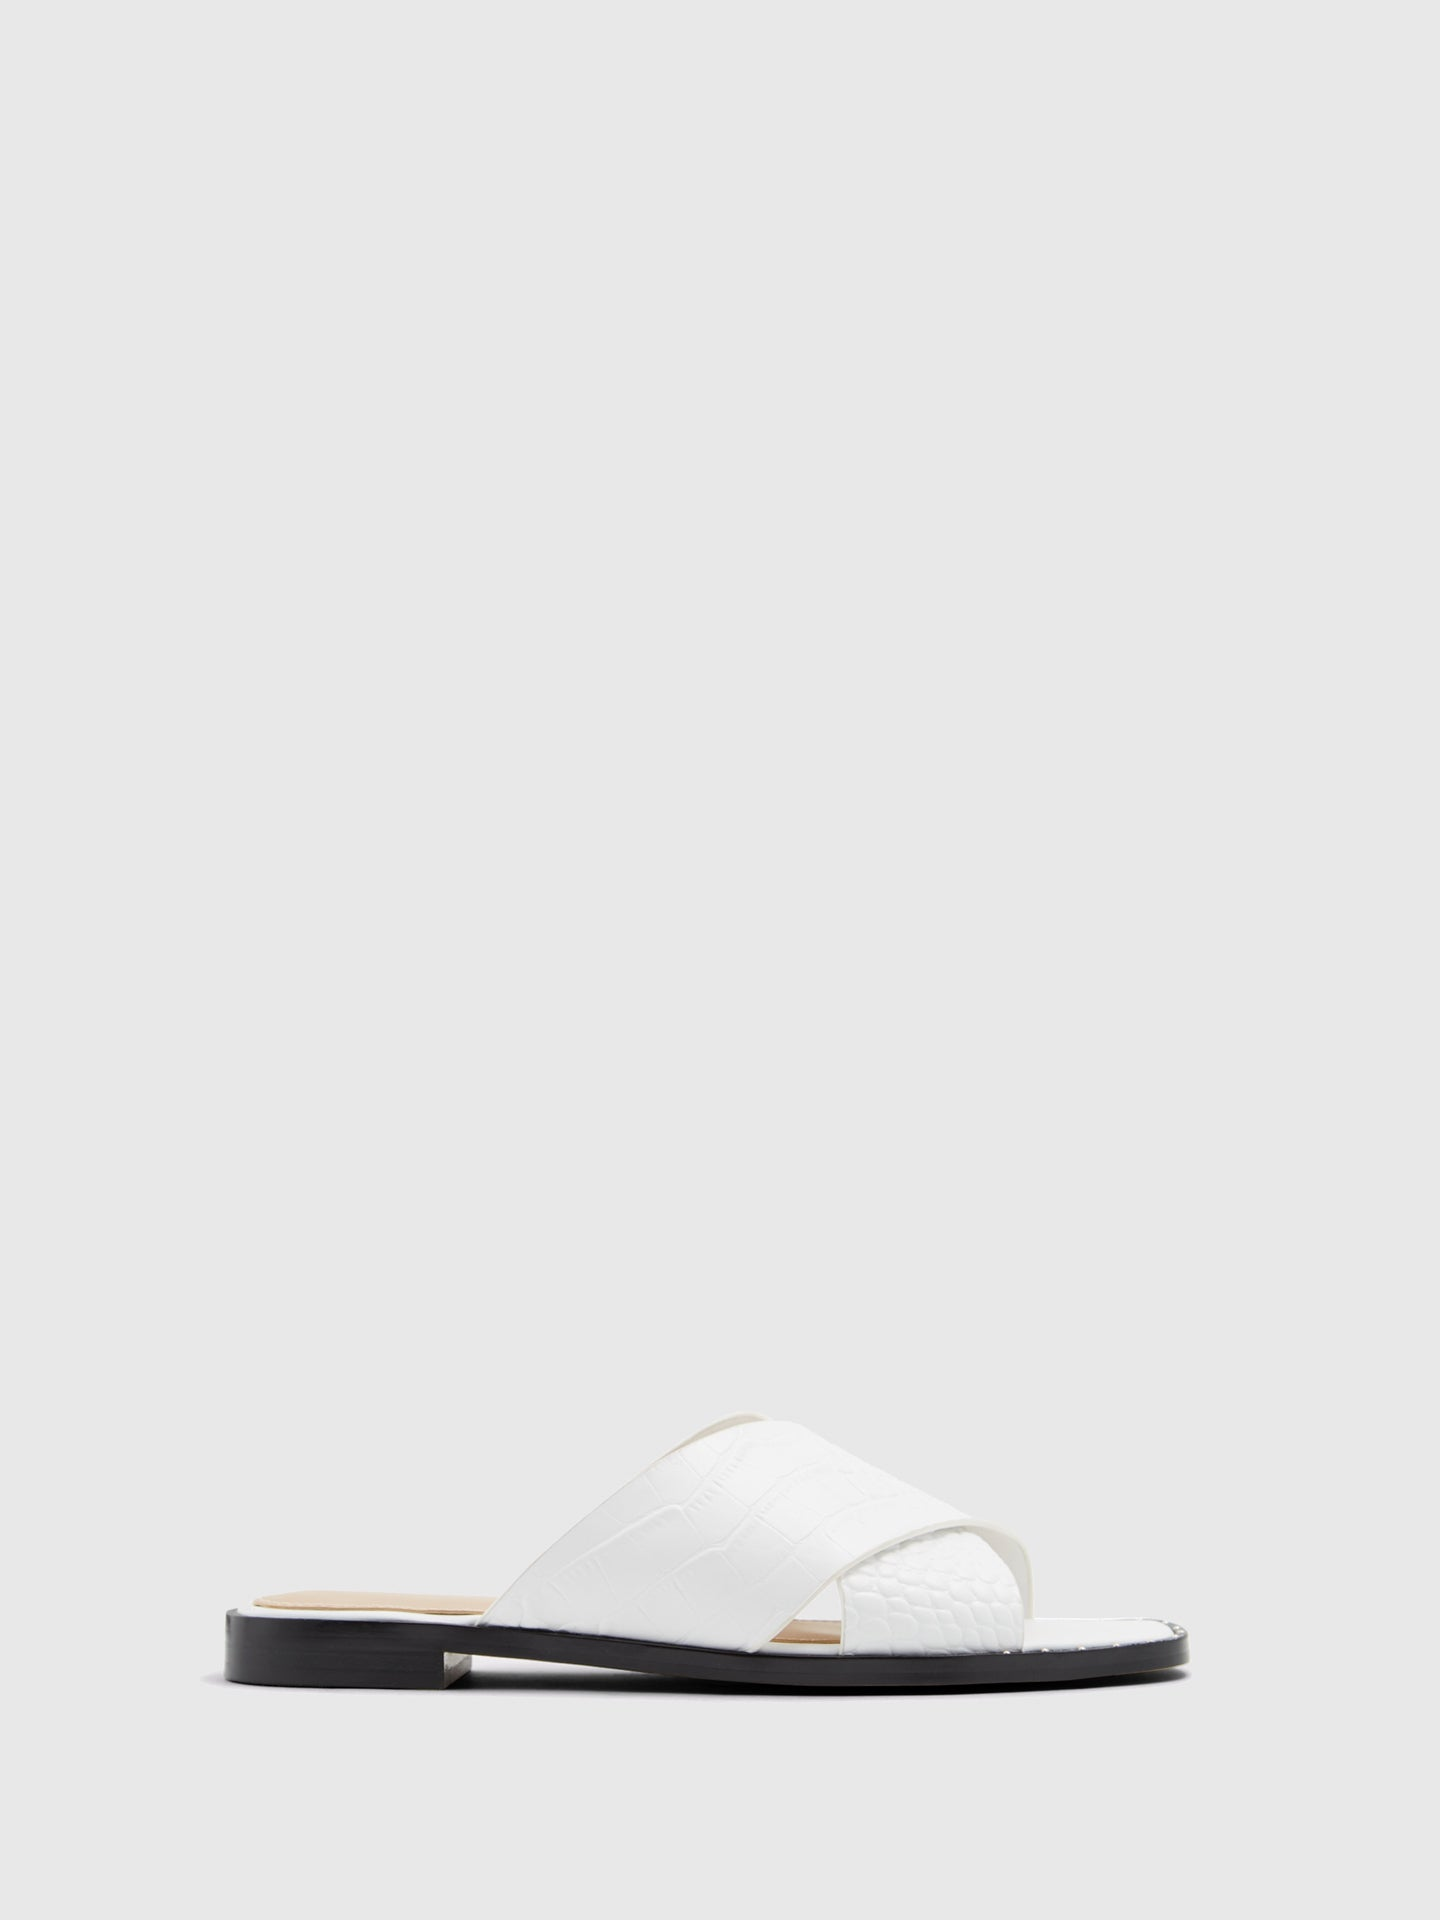 Aldo White Open Toe Mules